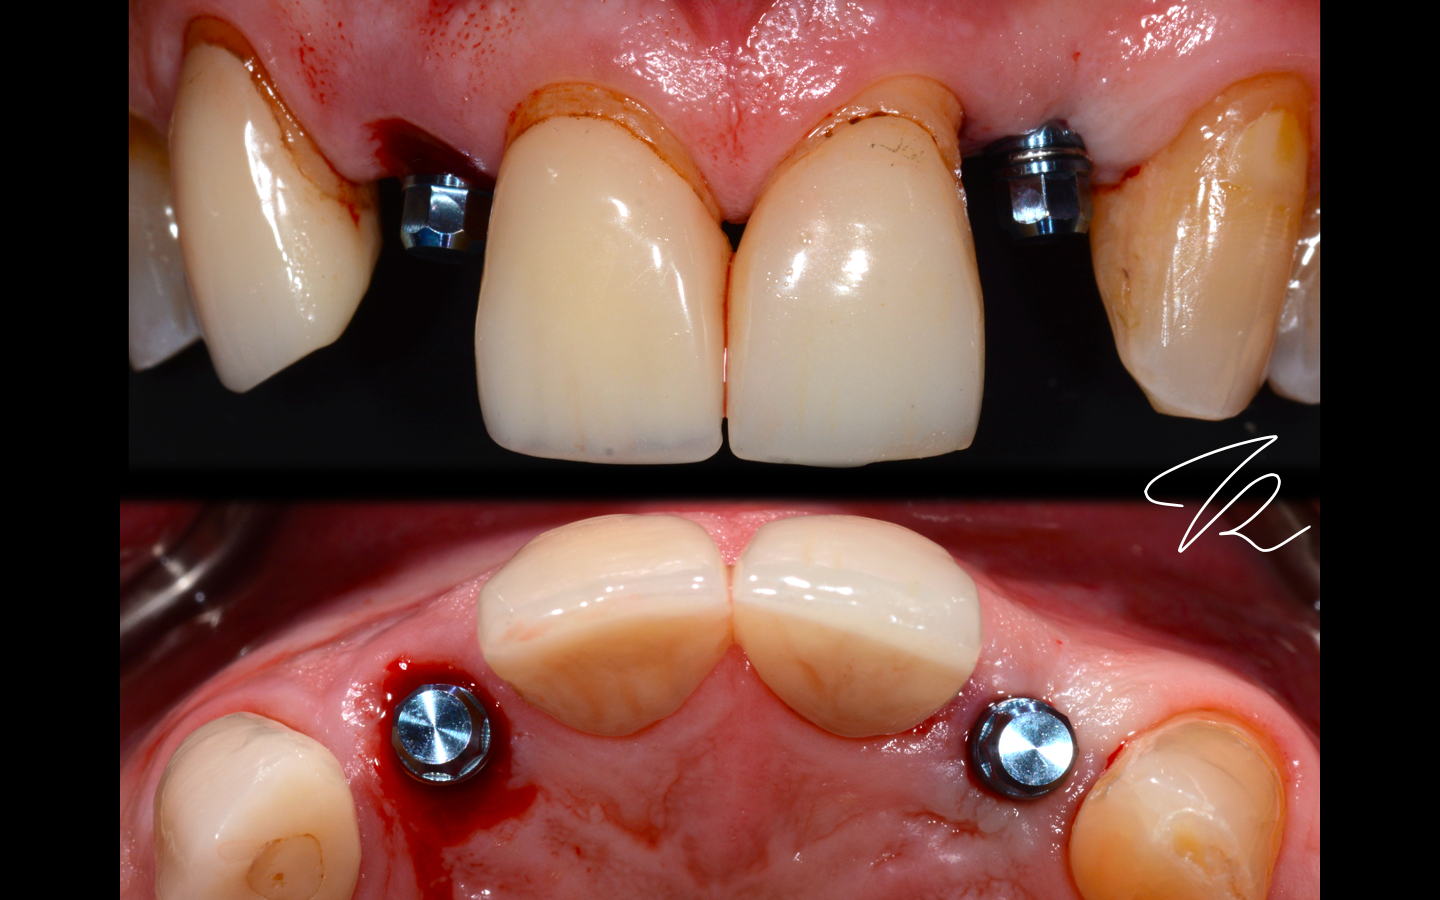 #12 immediate implant placement, #22 flapless implant placement